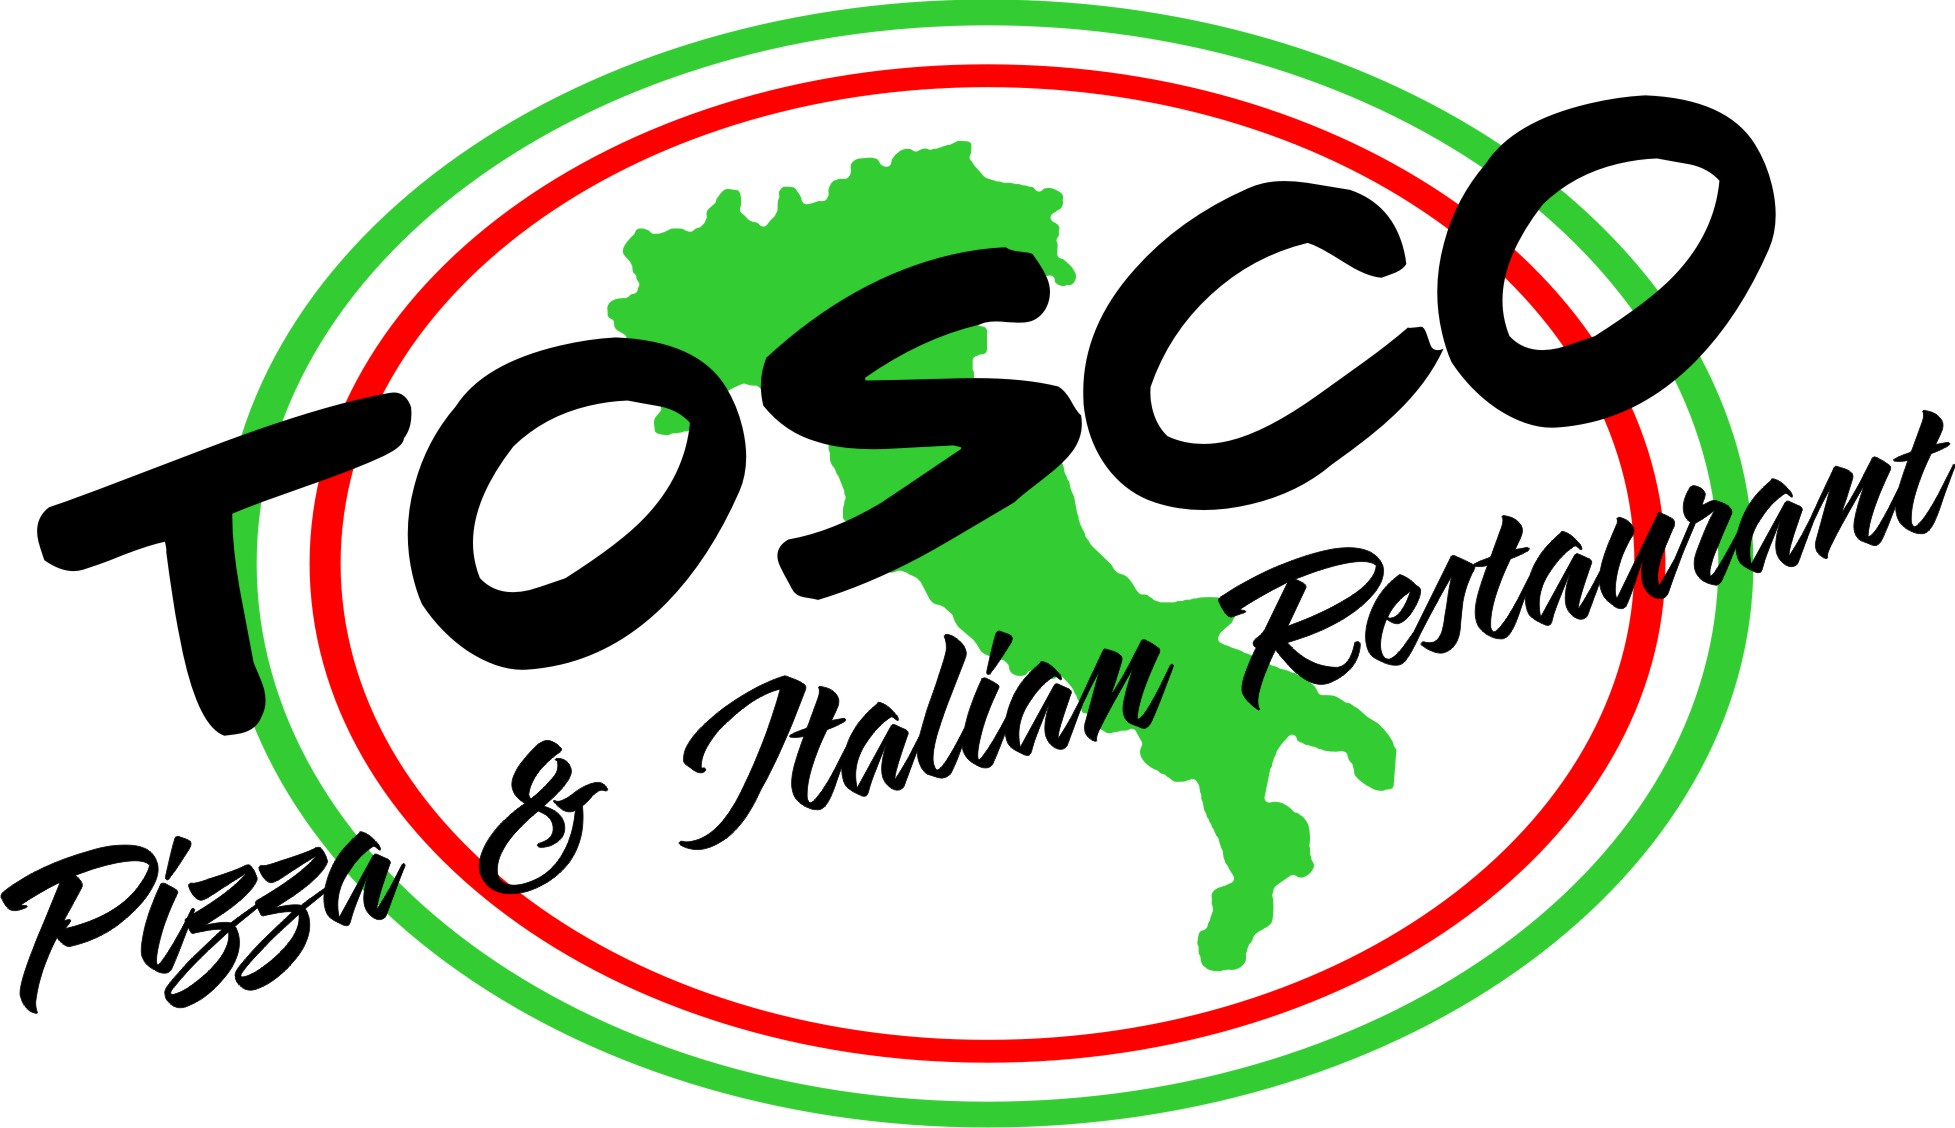 <B>TOSCO PIZZA & ITALIAN RESTAURANT</B>